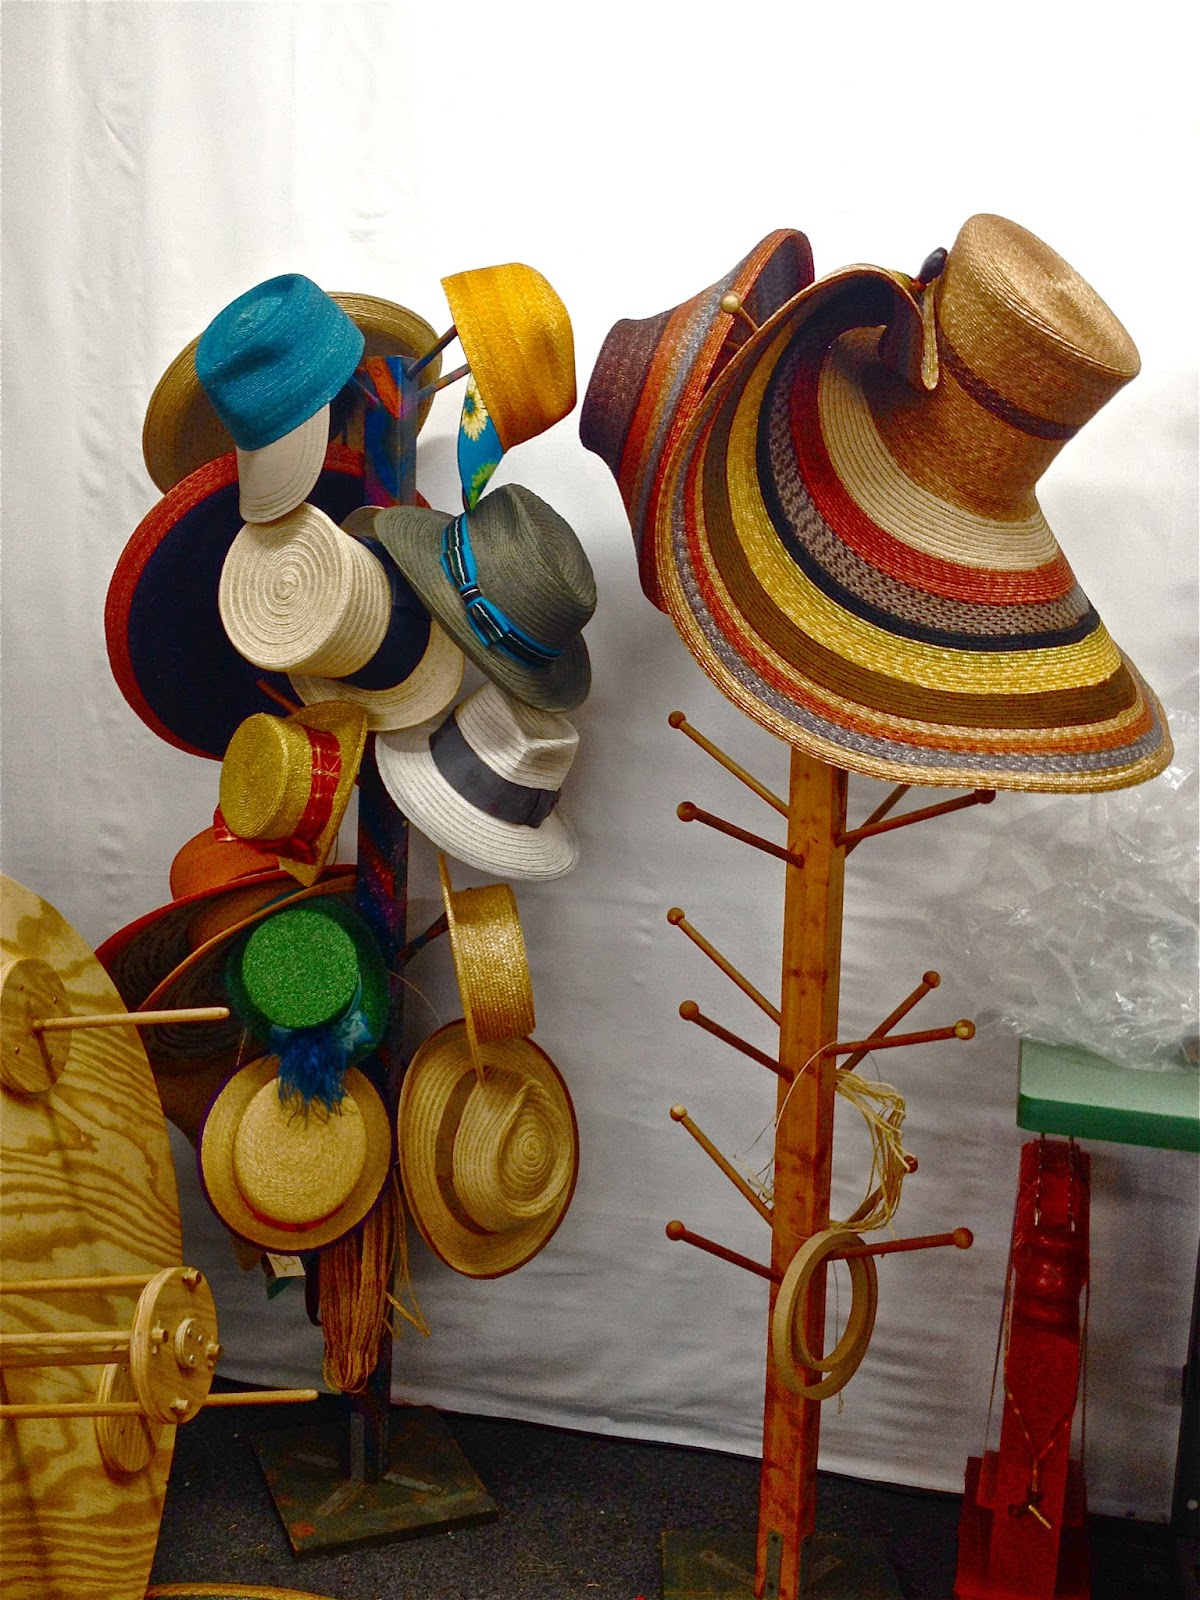 e178e833 Sewn straw braid hats contracted by hat companies waiting to be sent off